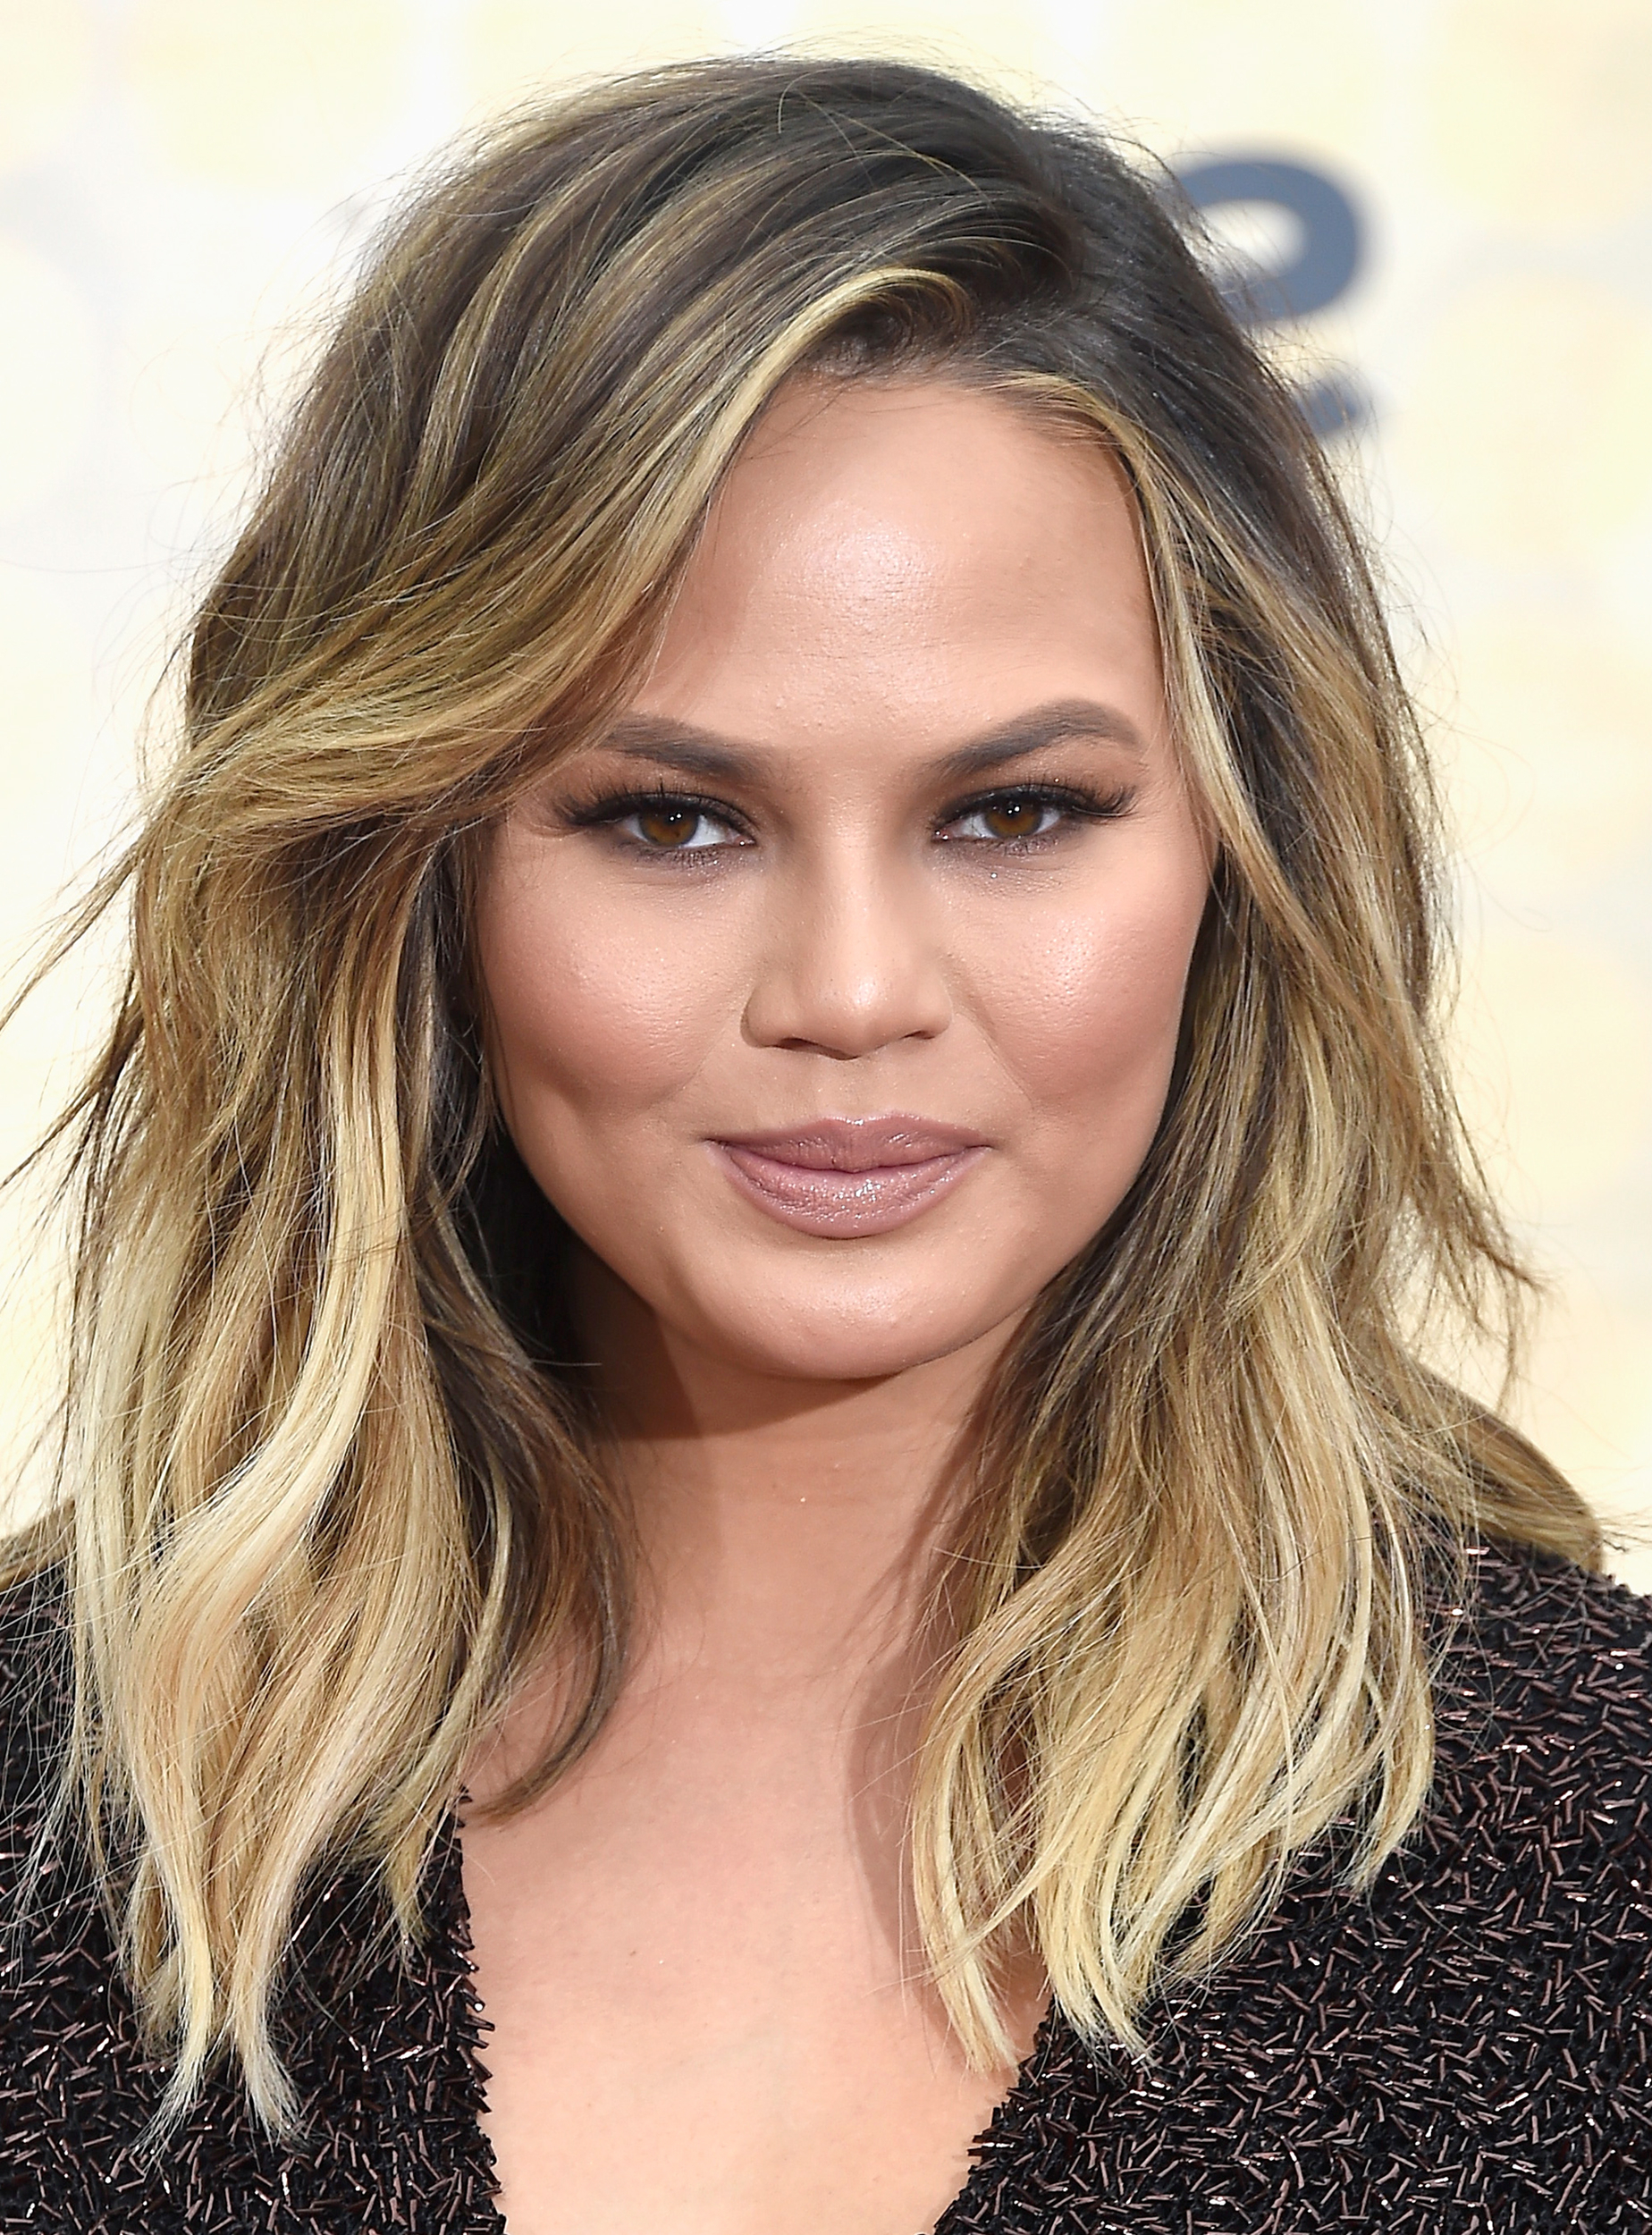 28 Best Hairstyles For Round Faces Inside Short Hairstyles For Big Cheeks (View 6 of 25)